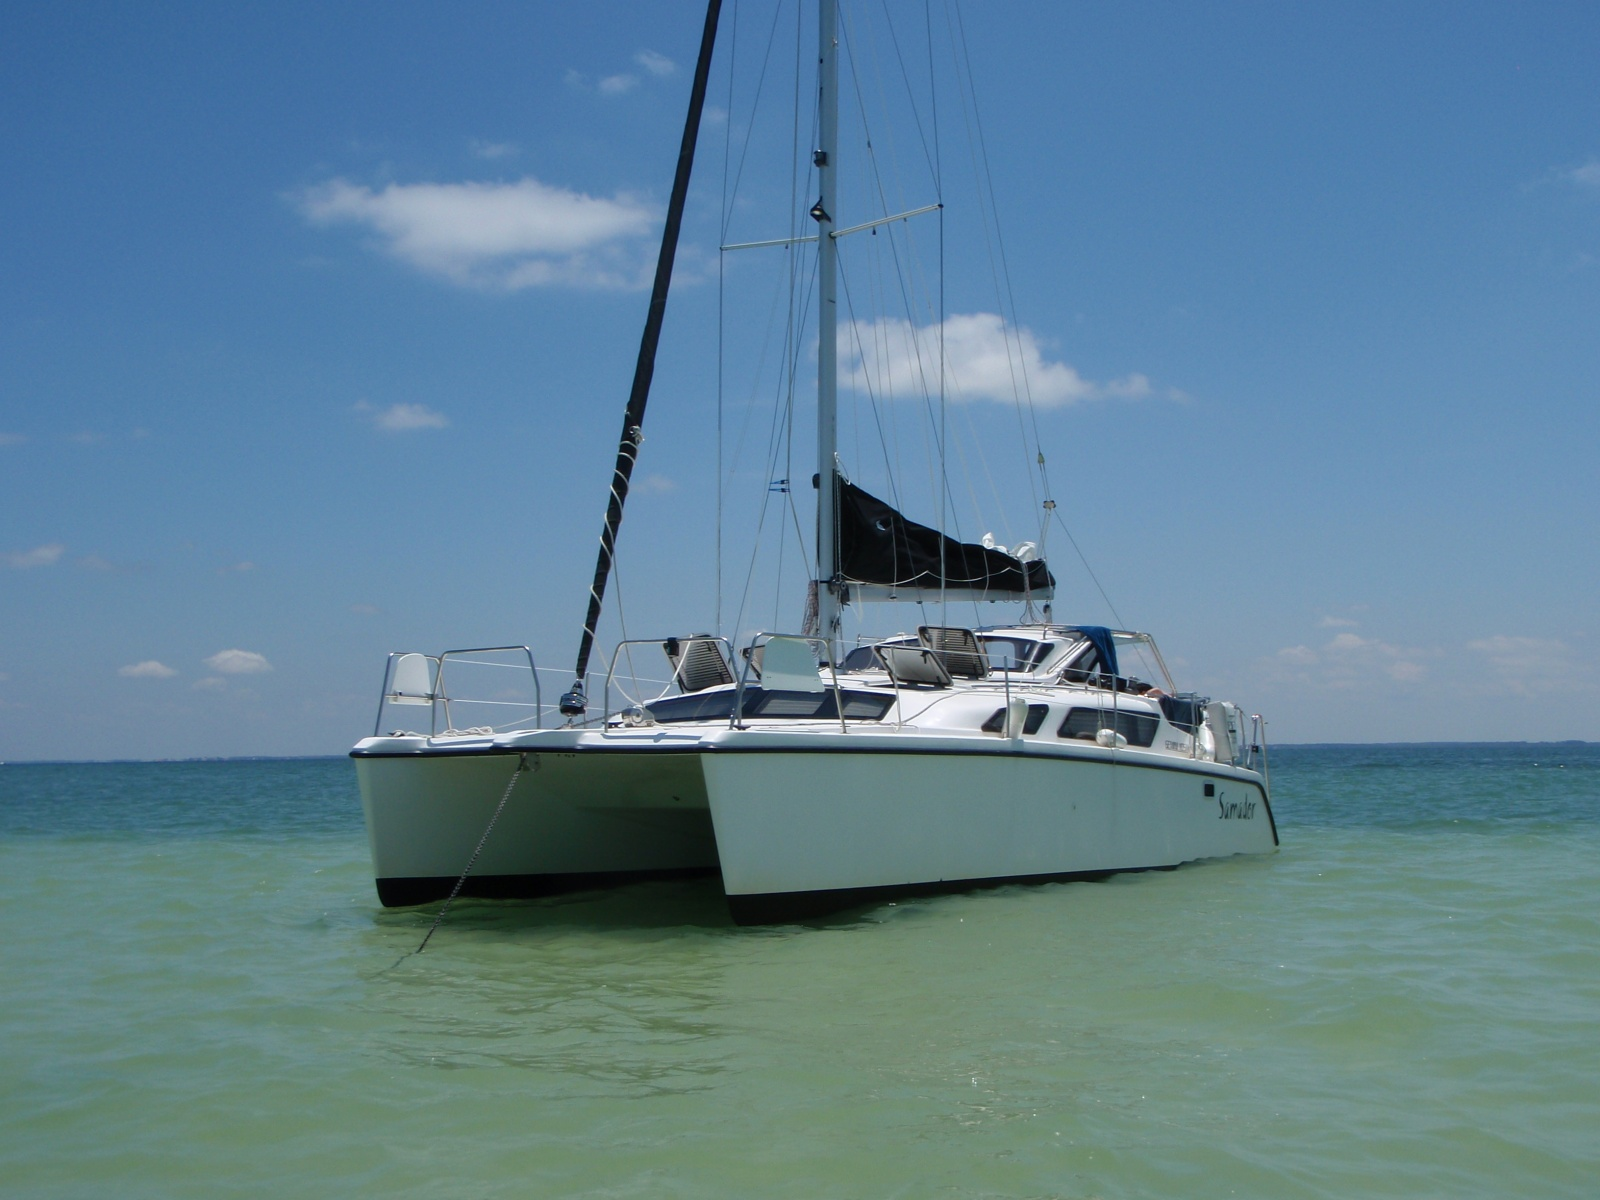 Click image for larger version  Name:First Anclote trip 7.jpg Views:179 Size:366.1 KB ID:29272